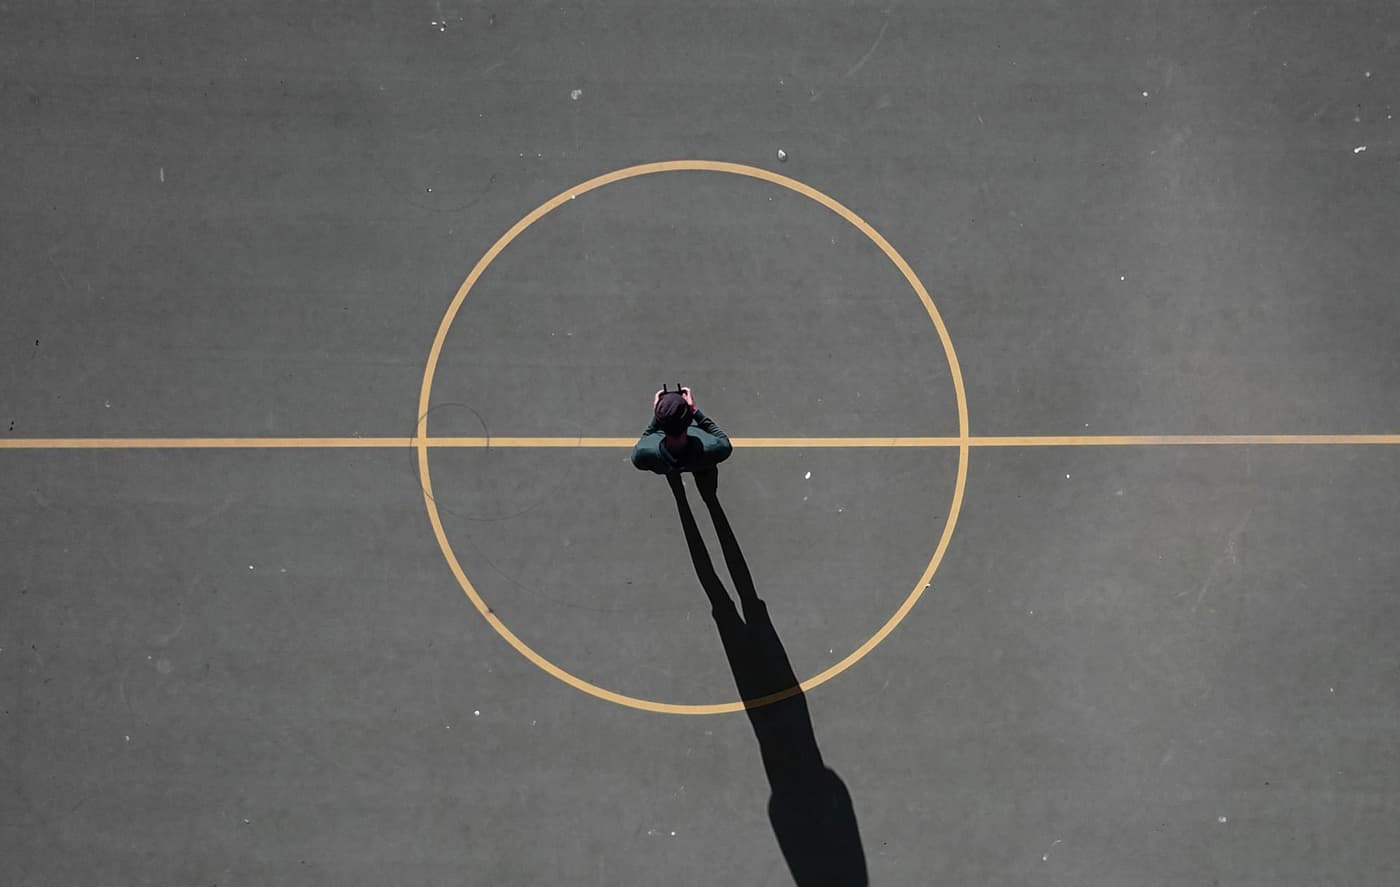 A photo of a man standing in the middle of a circle at the center of a basketball court